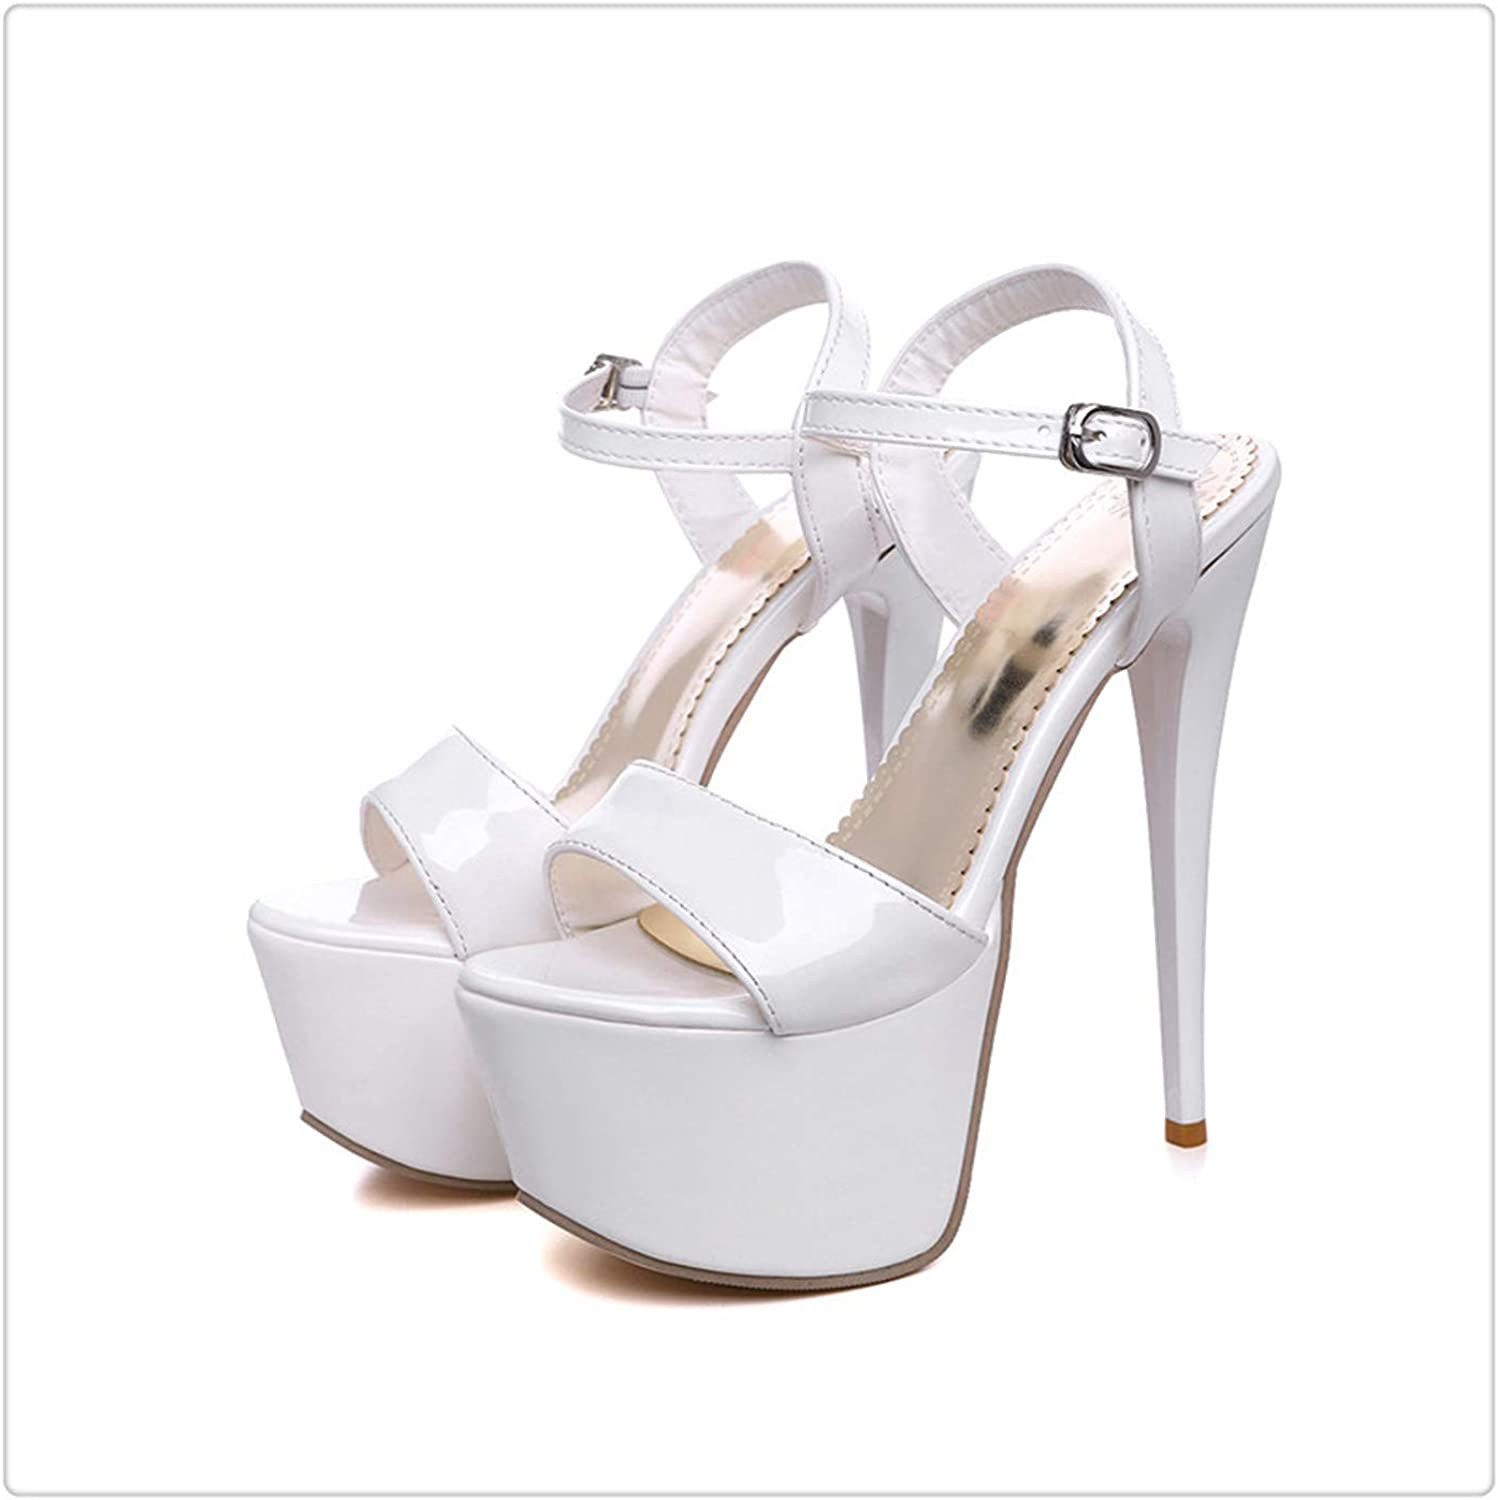 AAKOPE& Hot 2019 Summer Gladiator Sandals Women Brand Design PU Leather Women Sandal Fashion High Heels Ladies Party Wedding shoes White 4.5